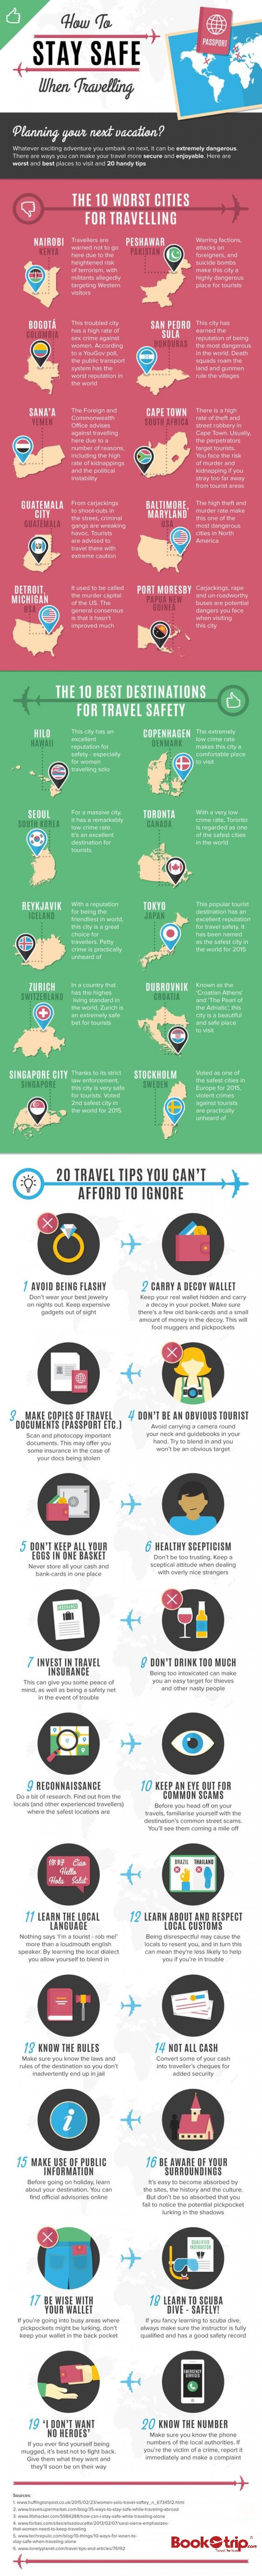 How to Stay Safe While Traveling Infographic